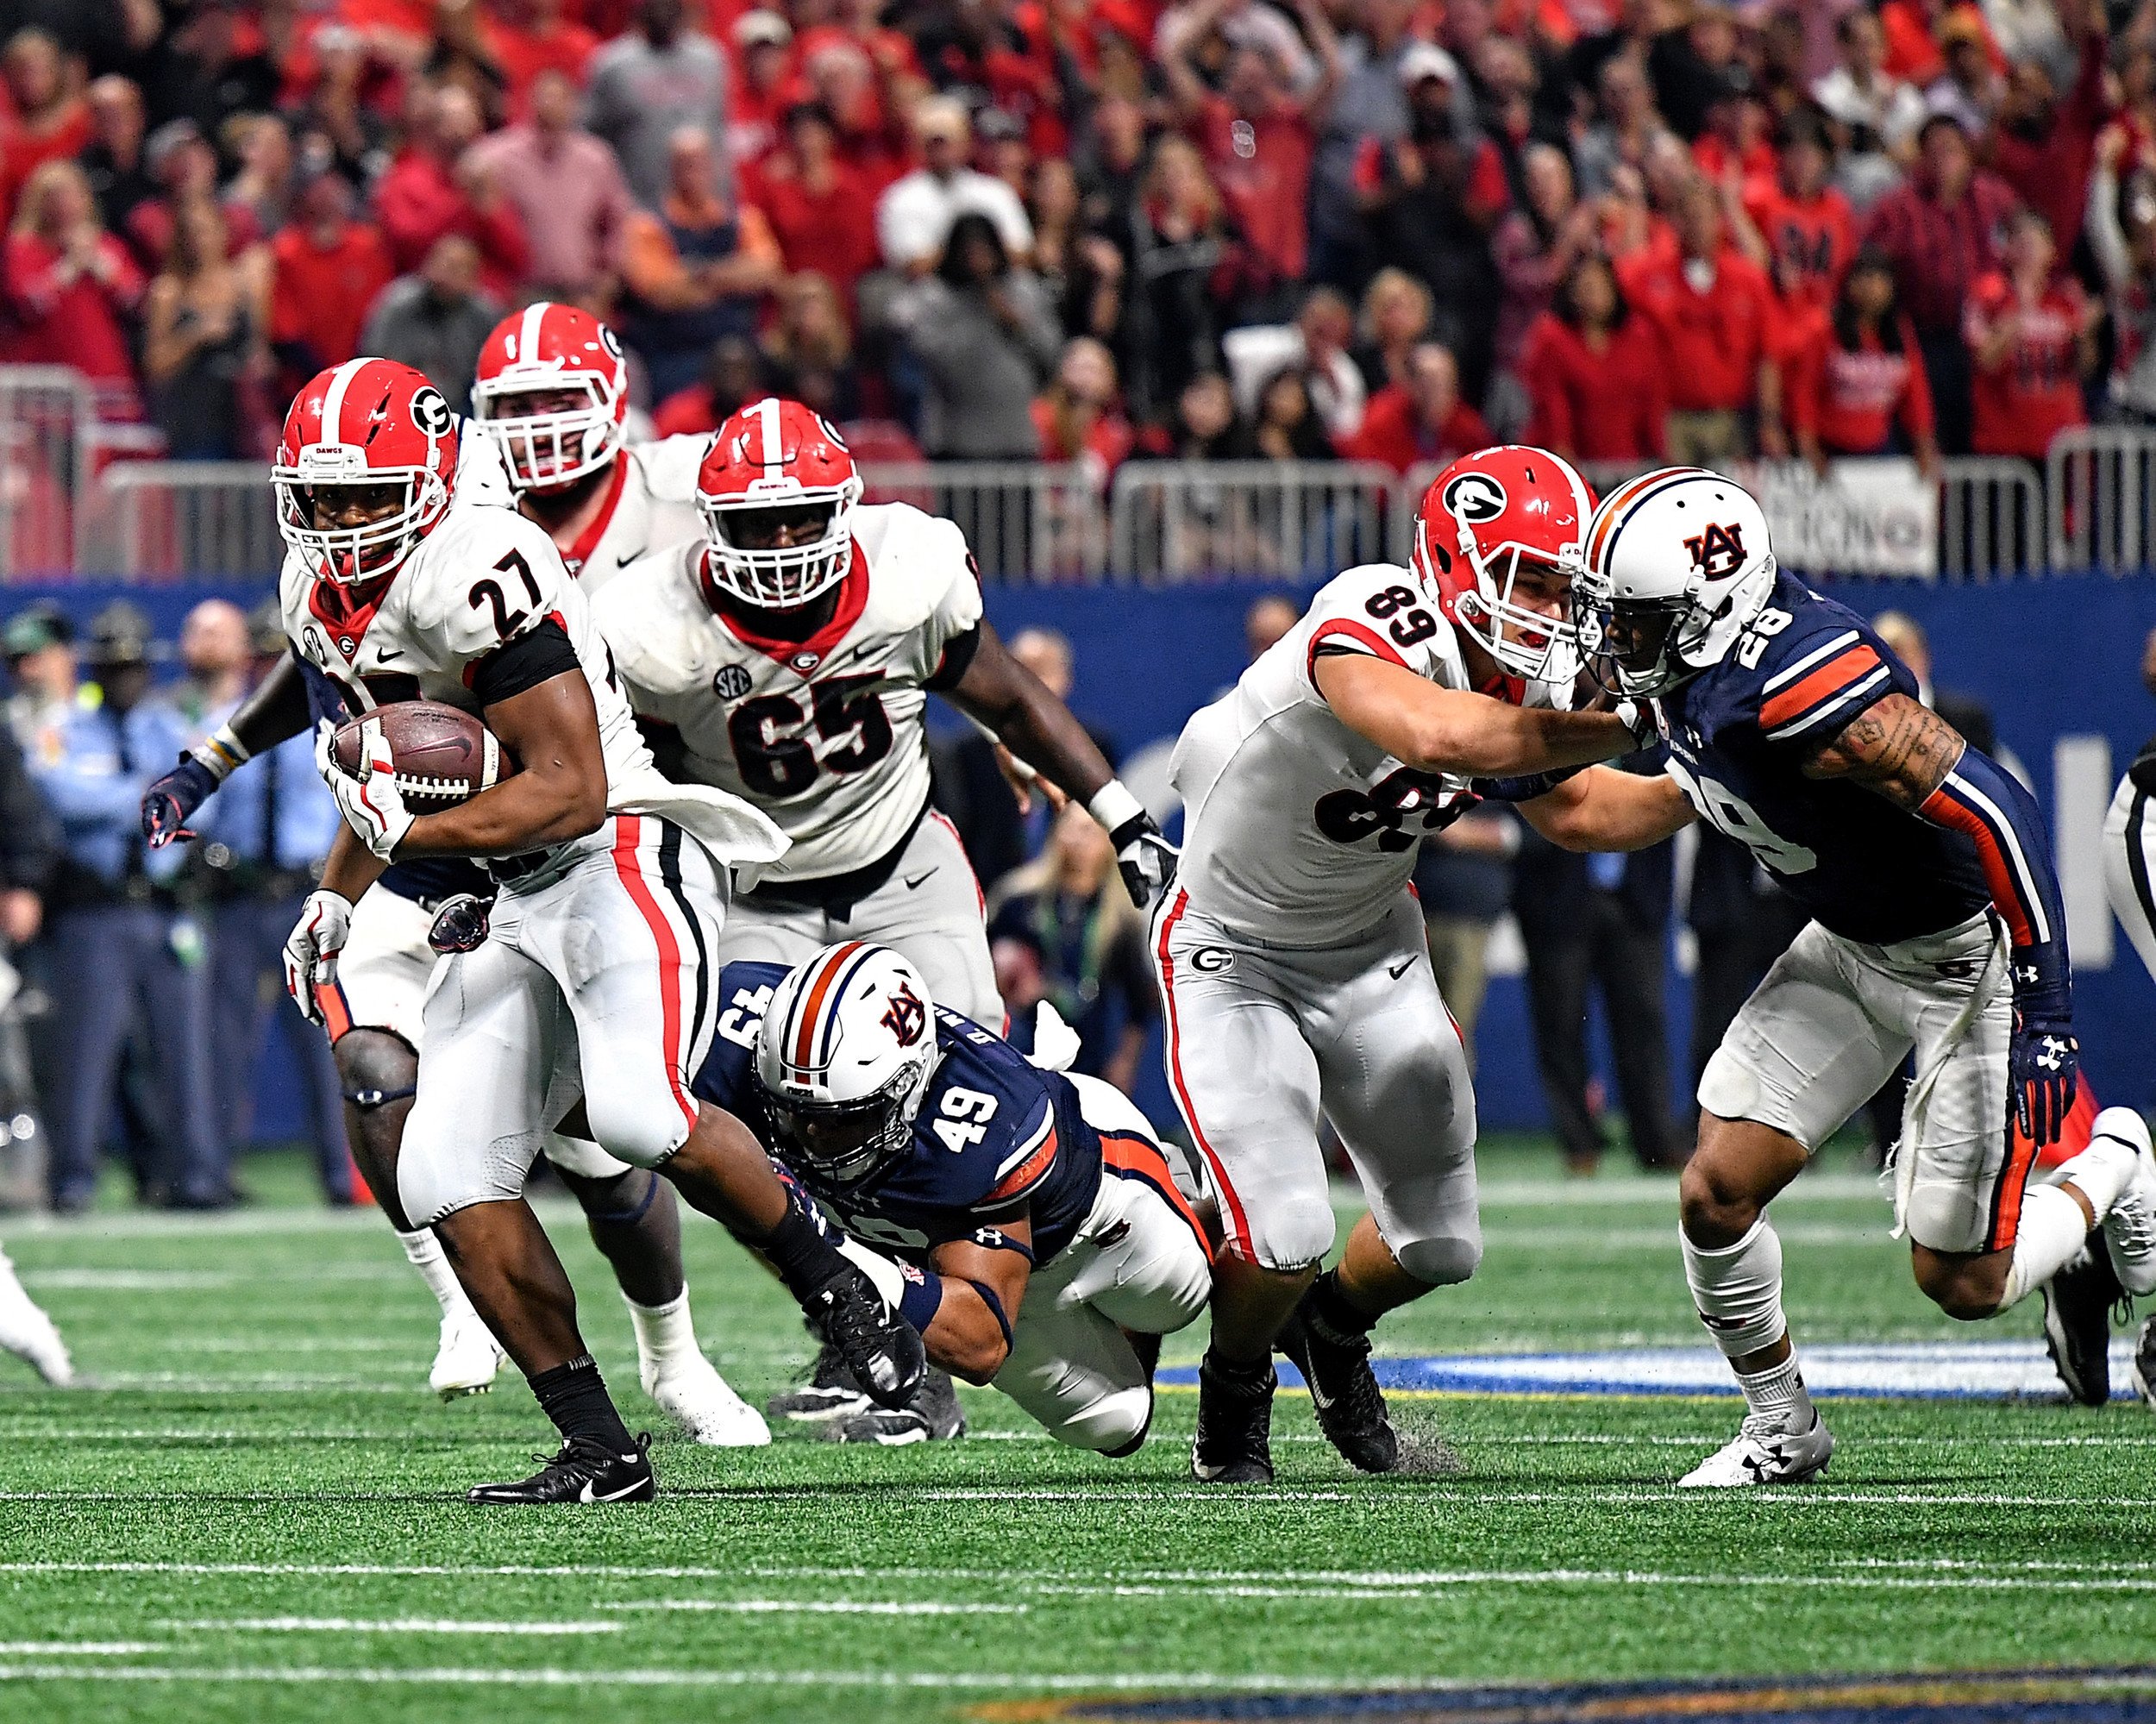 From the second half of the 2017 SEC Championship Game between the Georgia Bulldogs and the Auburn Tigers on Dec. 2, 2017, at the Mercedes-Benz Stadium in Atlanta, Ga. Georgia won 28-7. (Photo by Lee Walls)